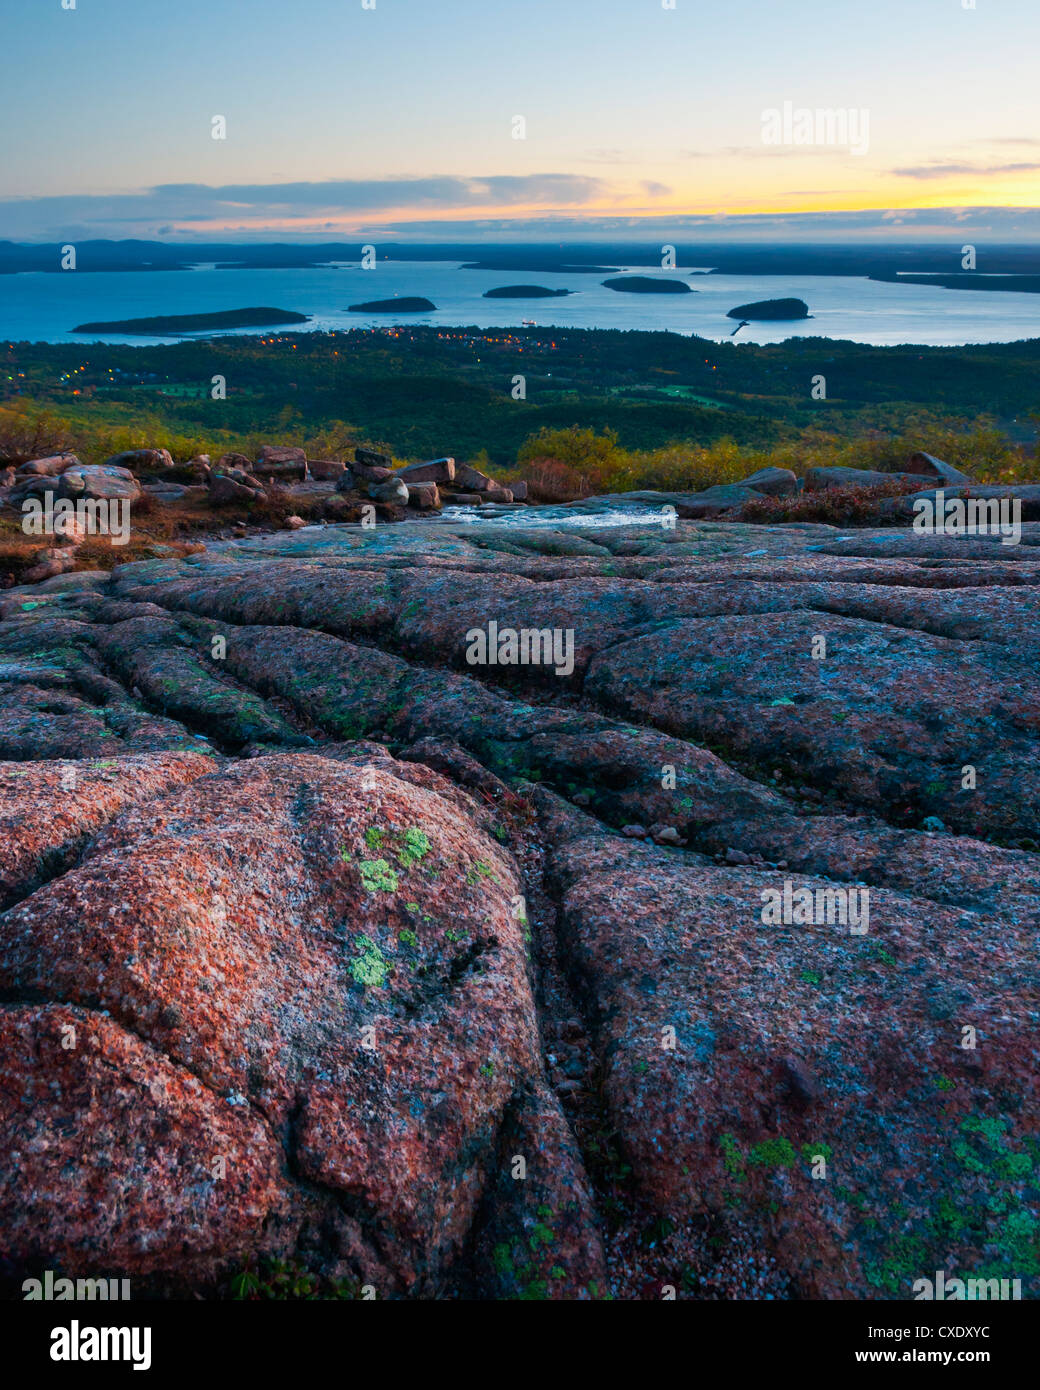 View from Cadillac Mountain, Acadia National Park, Mount Desert Island, Maine, New England, United States of America Stock Photo